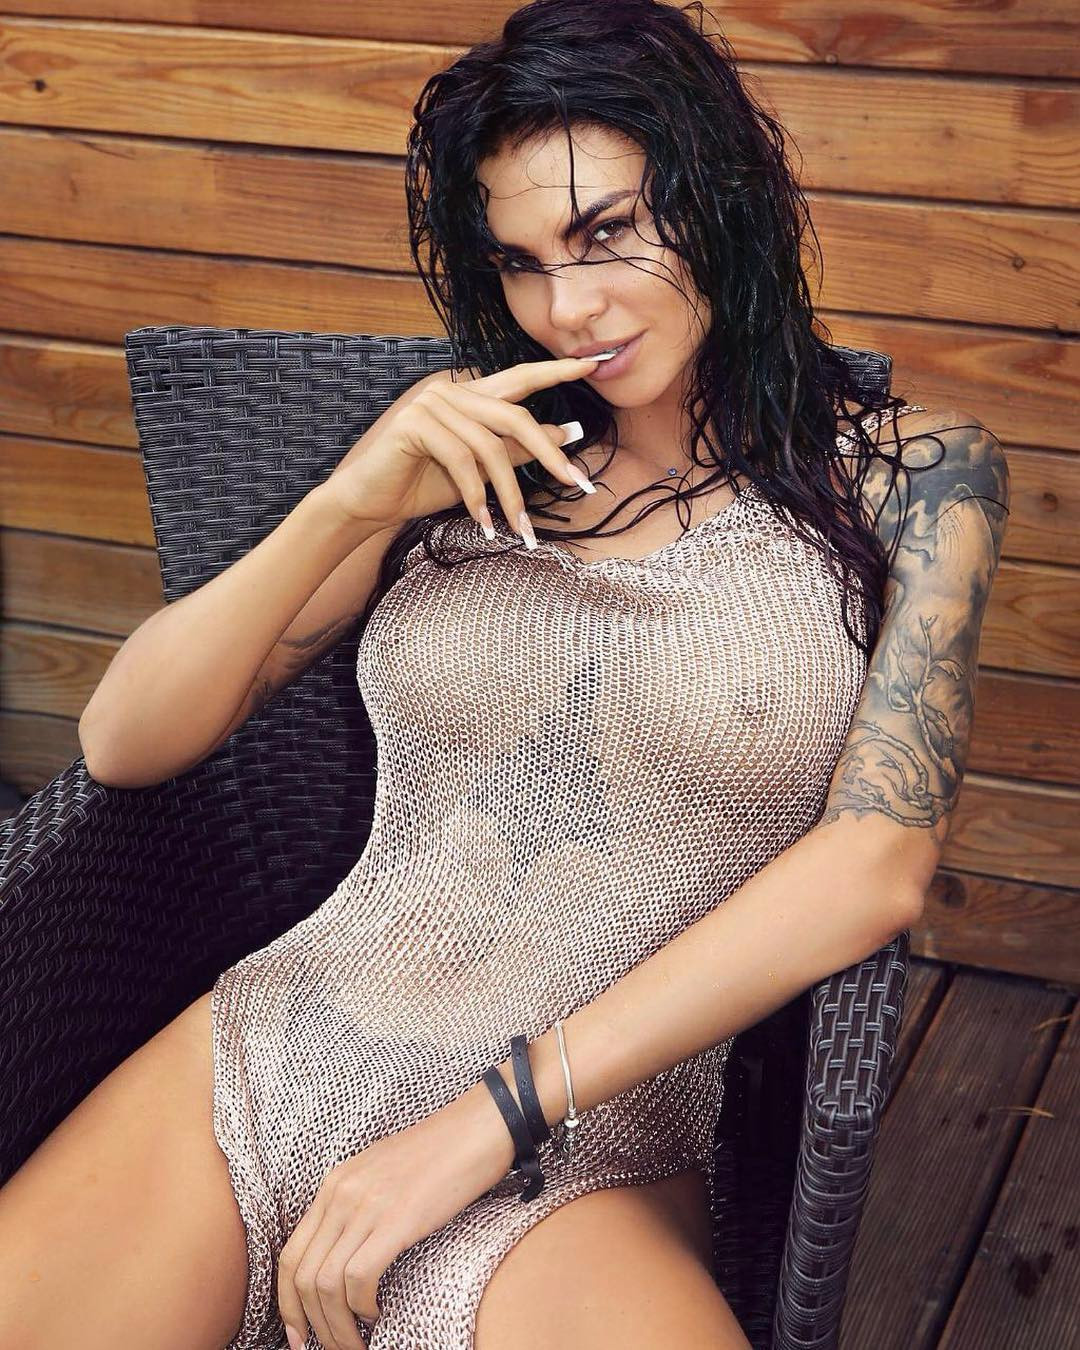 Sexy Wet Girl Naked Photo